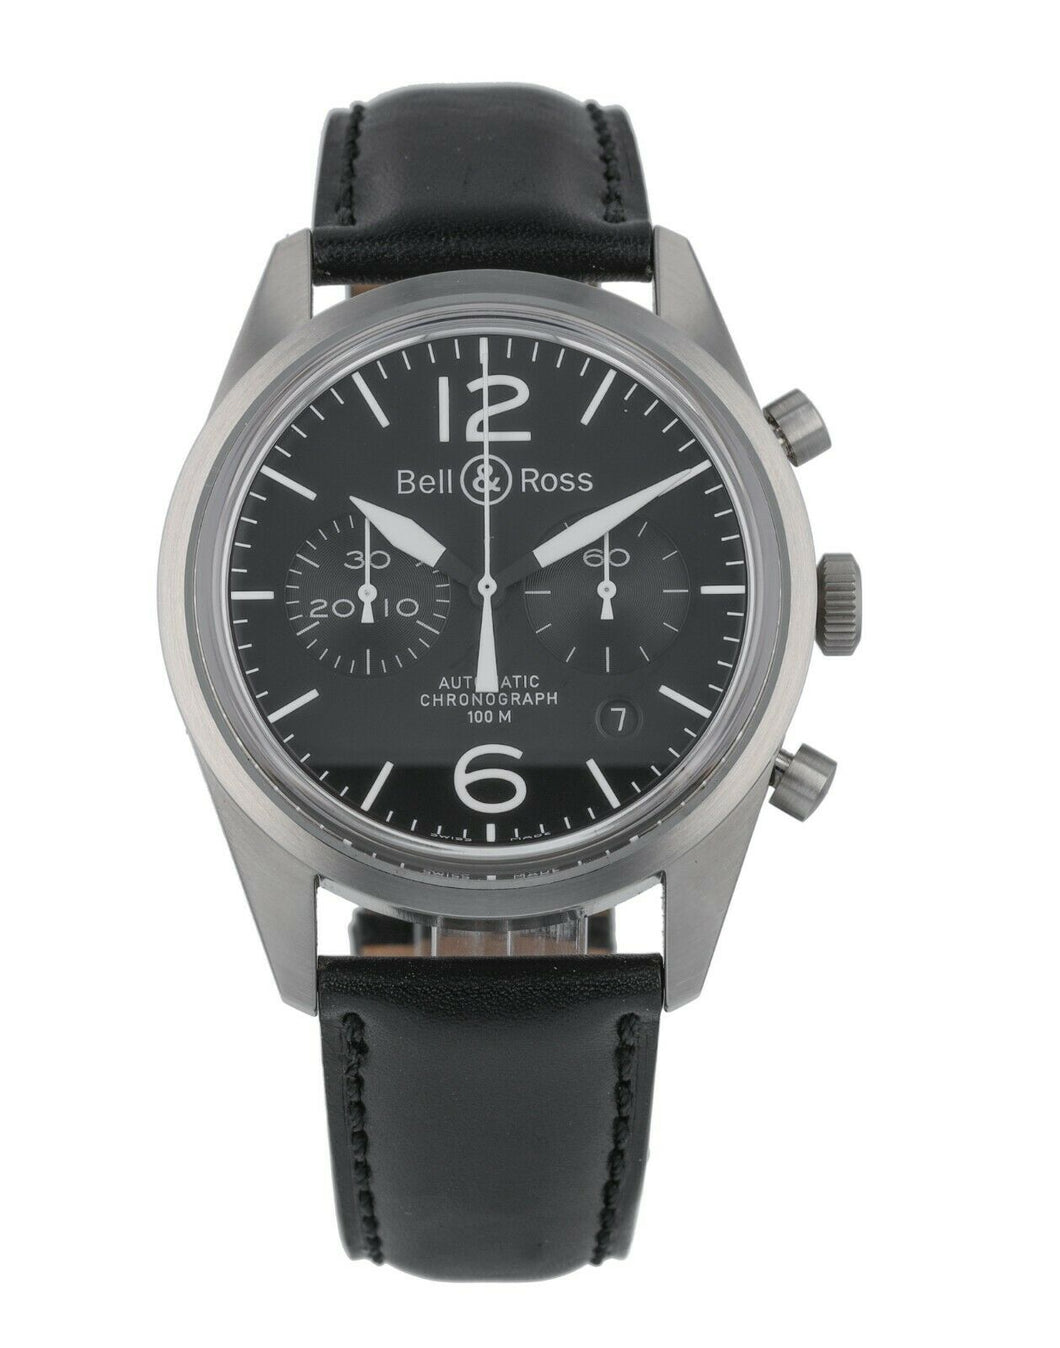 Bell & Ross Vintage Chronograph Automatic 41mm Men's Watch BRV126-BL-ST